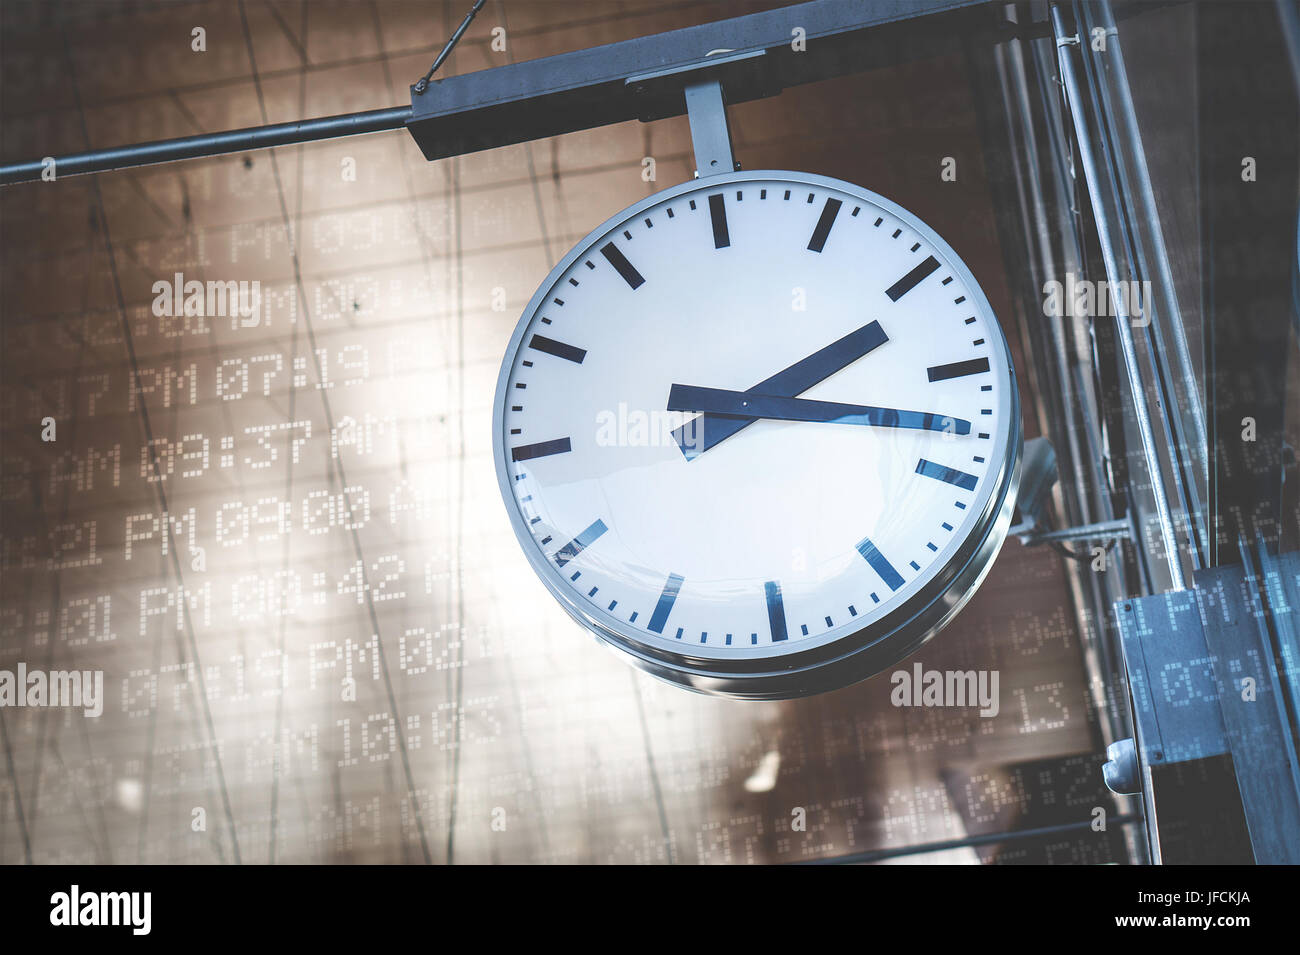 Time management and scheduling concept. Analog clock surrounded with digital time codes, AM and PM. - Stock Image